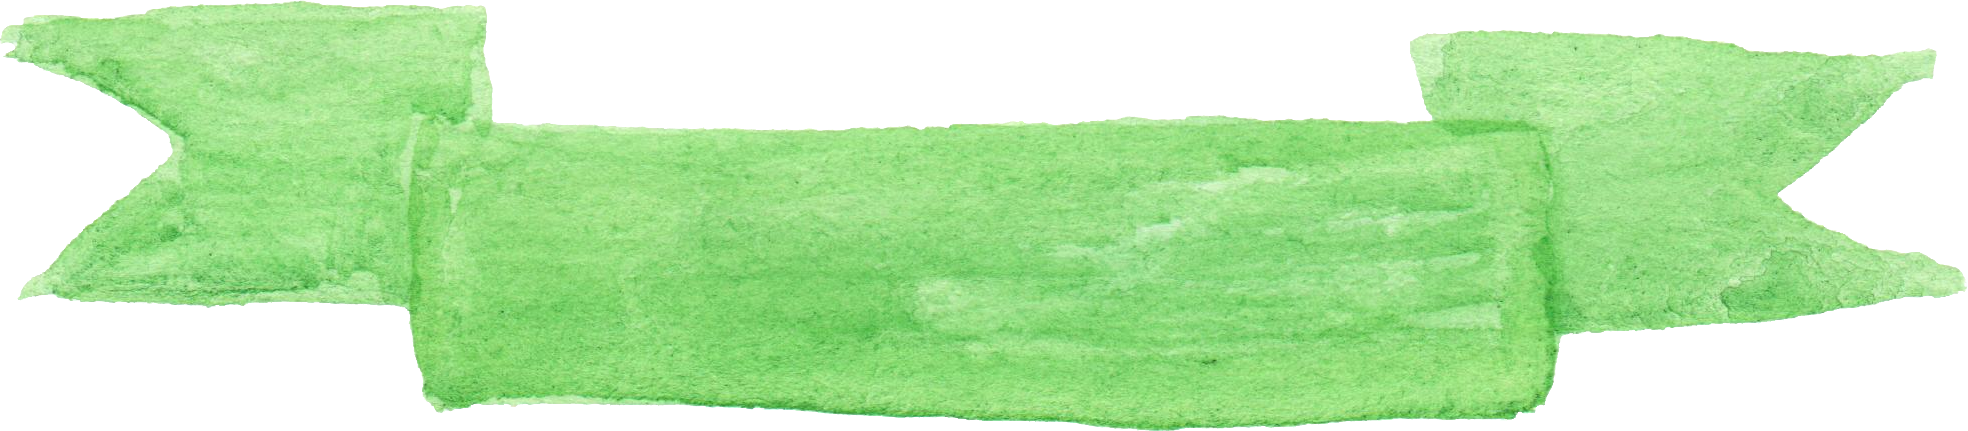 Banner png green. Watercolor banners transparent